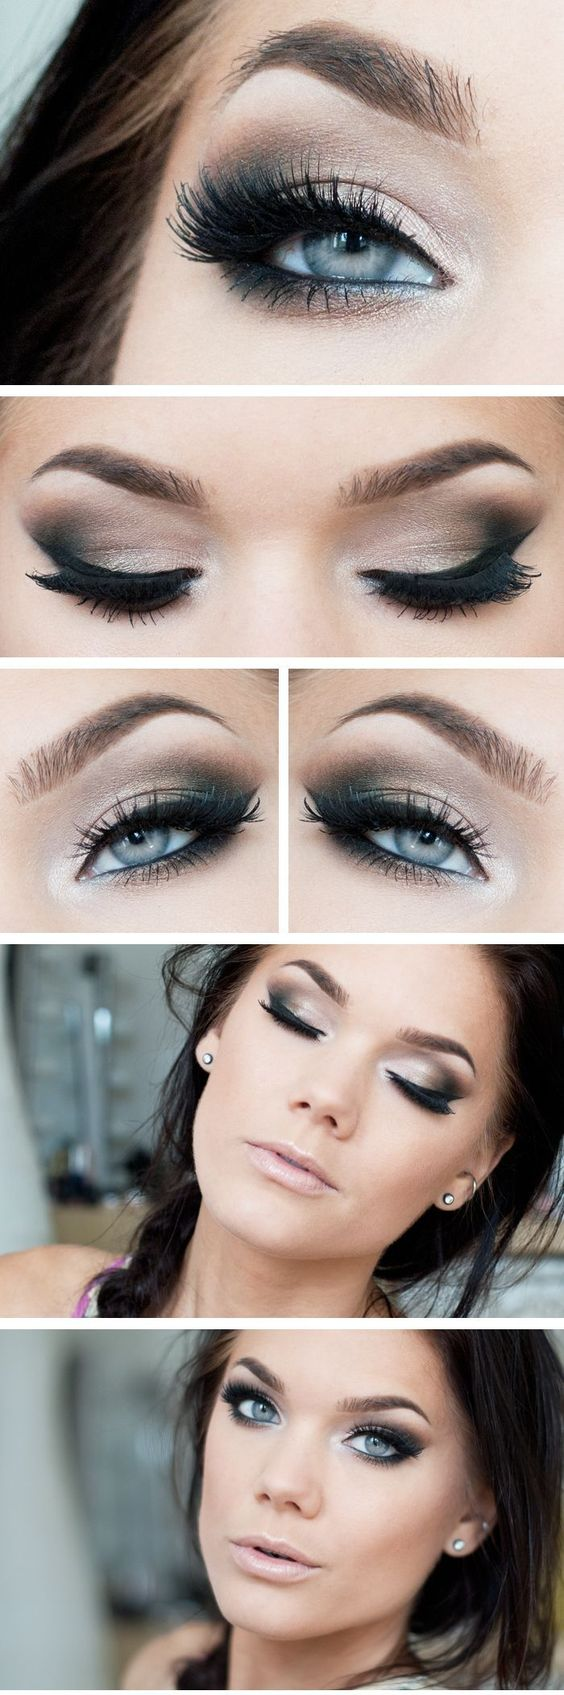 11 Awesome Eye Makeup Looks for Blue Eyes - Pretty Designs